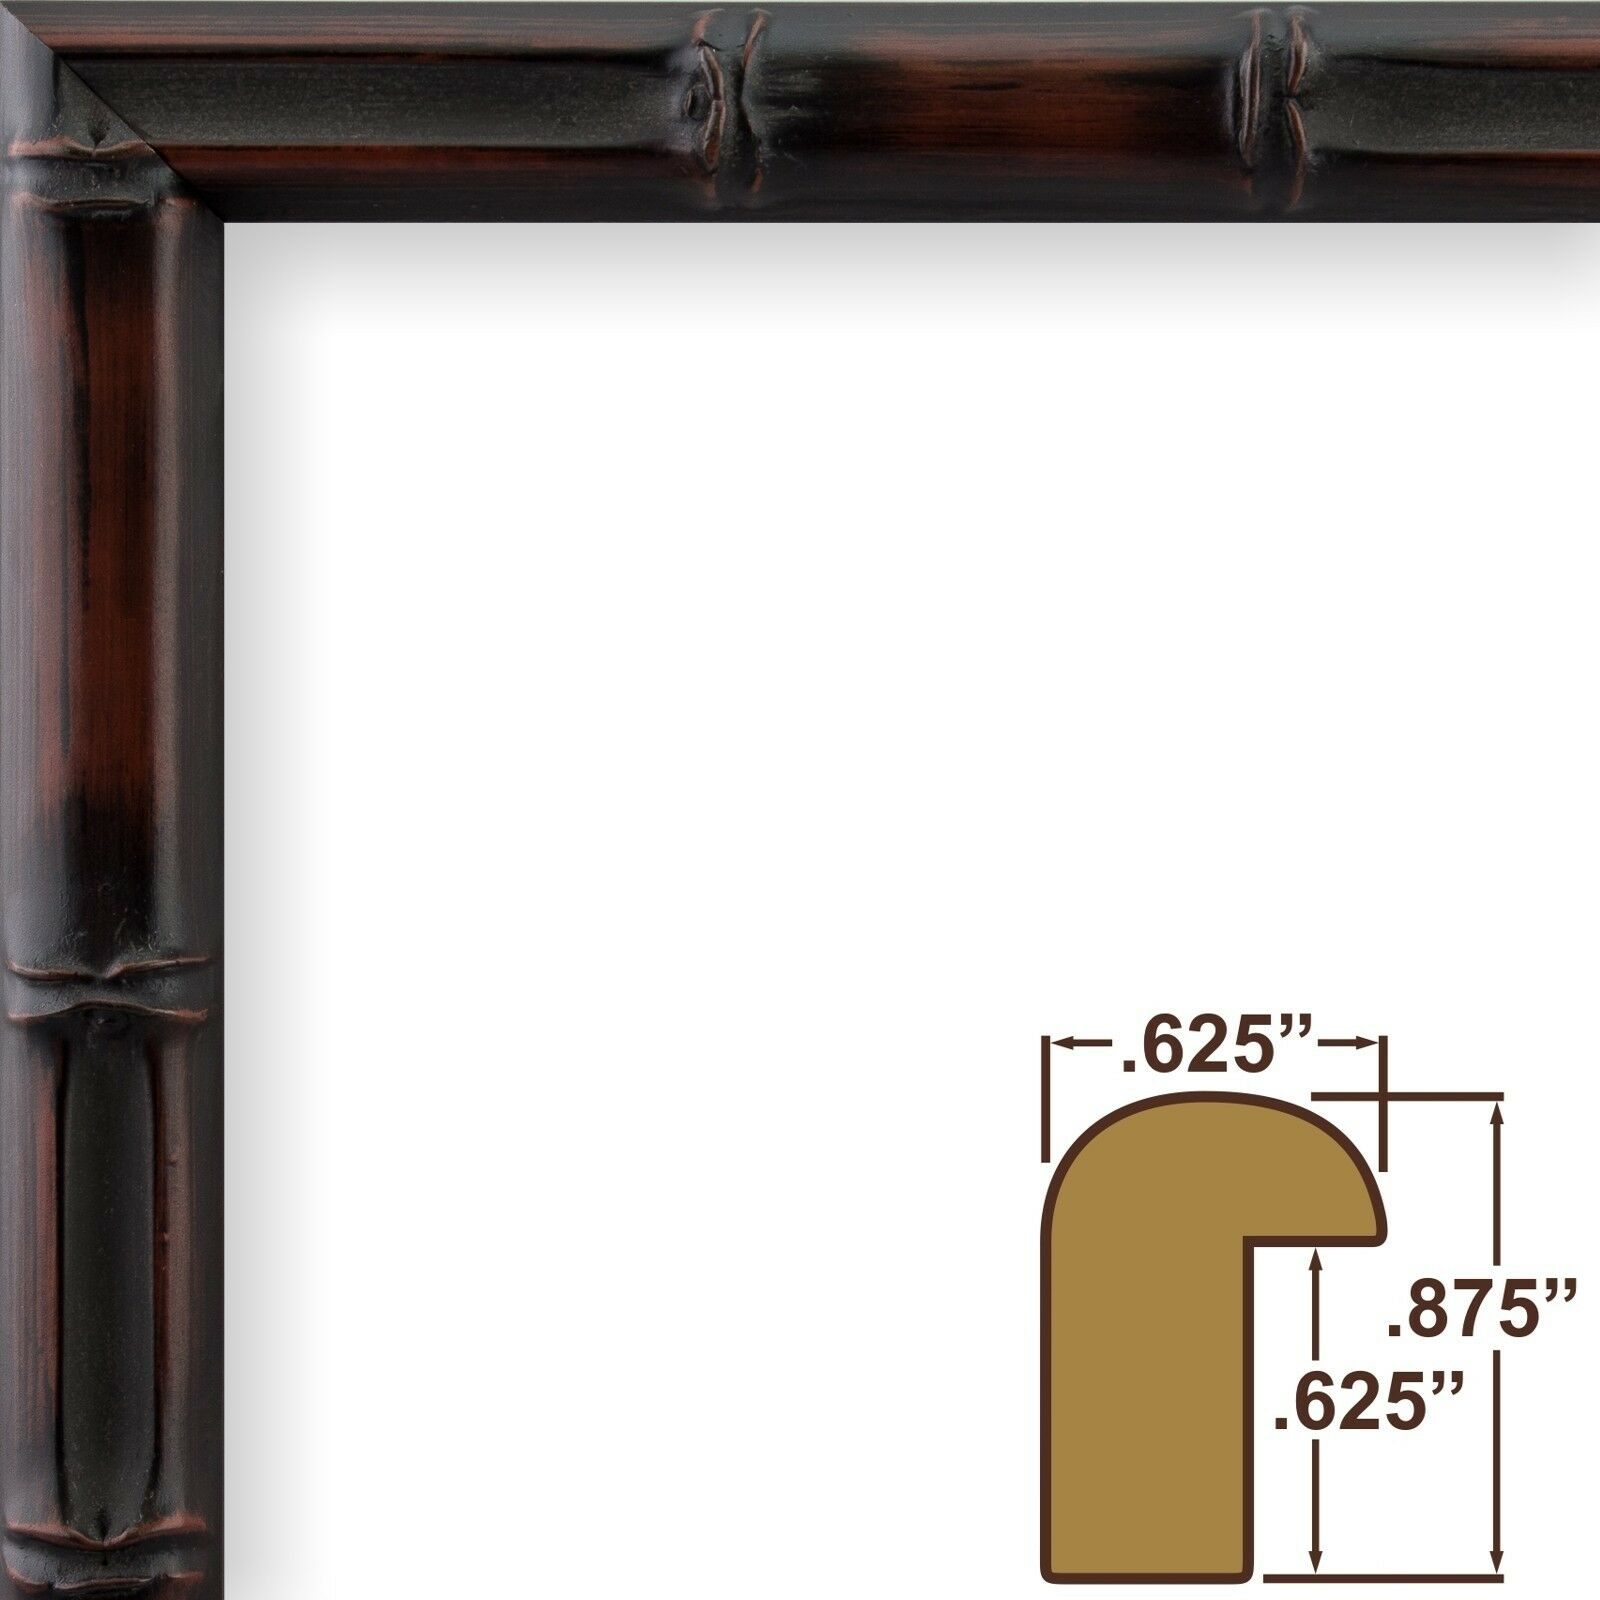 Craig frames vintage bamboo composite wood picture frame 18x24 ebay picture 1 of 11 jeuxipadfo Gallery